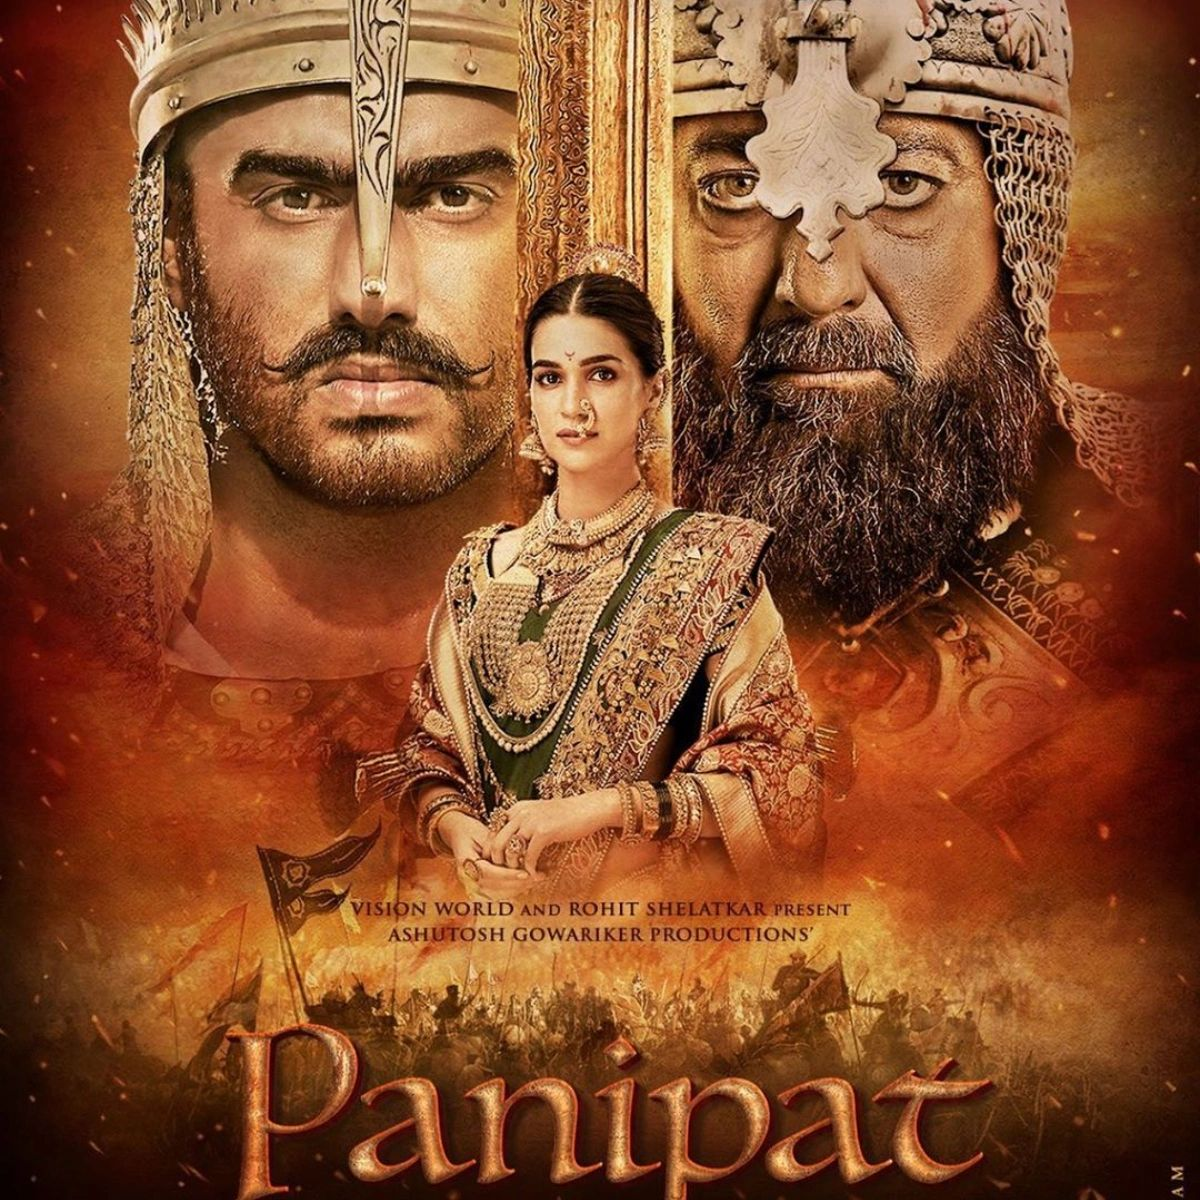 "{""blocks"":[{""key"":""6dgq0"",""text"":""Directed by Ashutosh Gowariker, this epic war film based on the third battle of Panipat stars Arjun Kapoor, Kriti Sanon, and Sanjay Dutt."",""type"":""unstyled"",""depth"":0,""inlineStyleRanges"":[],""entityRanges"":[],""data"":{}}],""entityMap"":{}}"